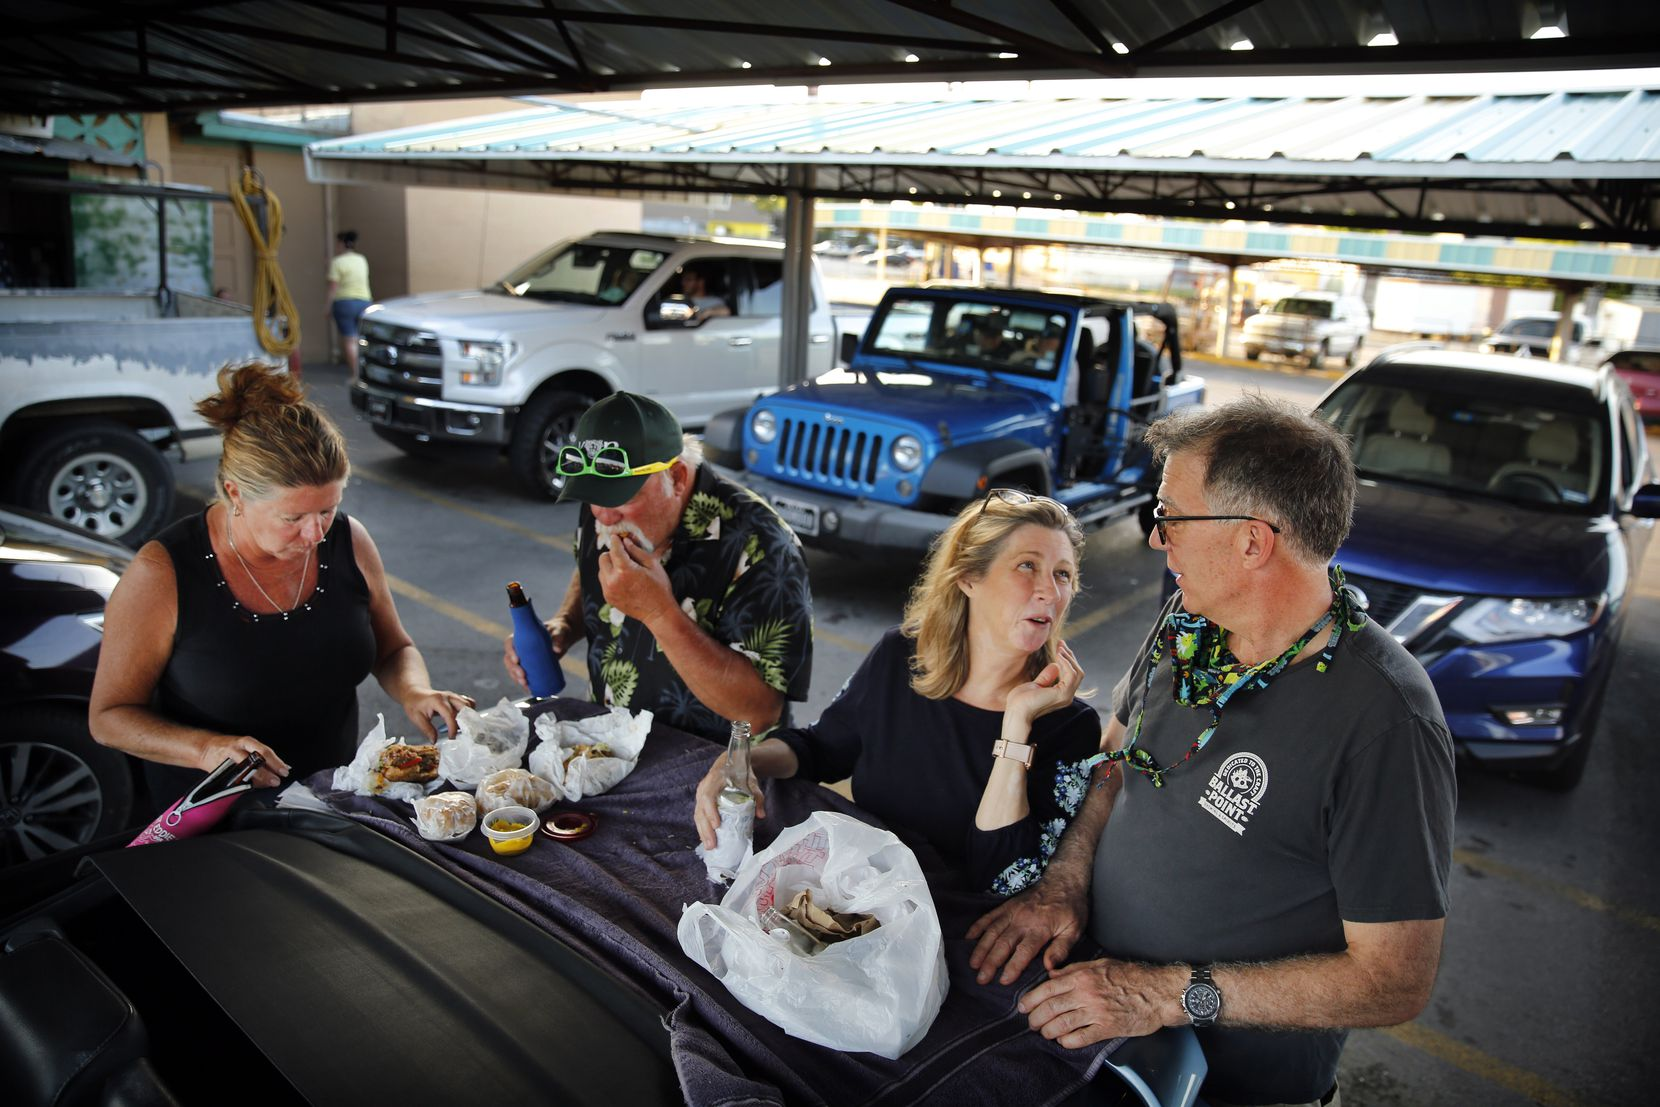 Dallas friends (from left), Donna and her husband Dennis Bardin, Laura Mallett and her sweetheart Randy Olena visit while having burgers and beers on the trunk of a Ford Mustang at Keller's Drive-In.